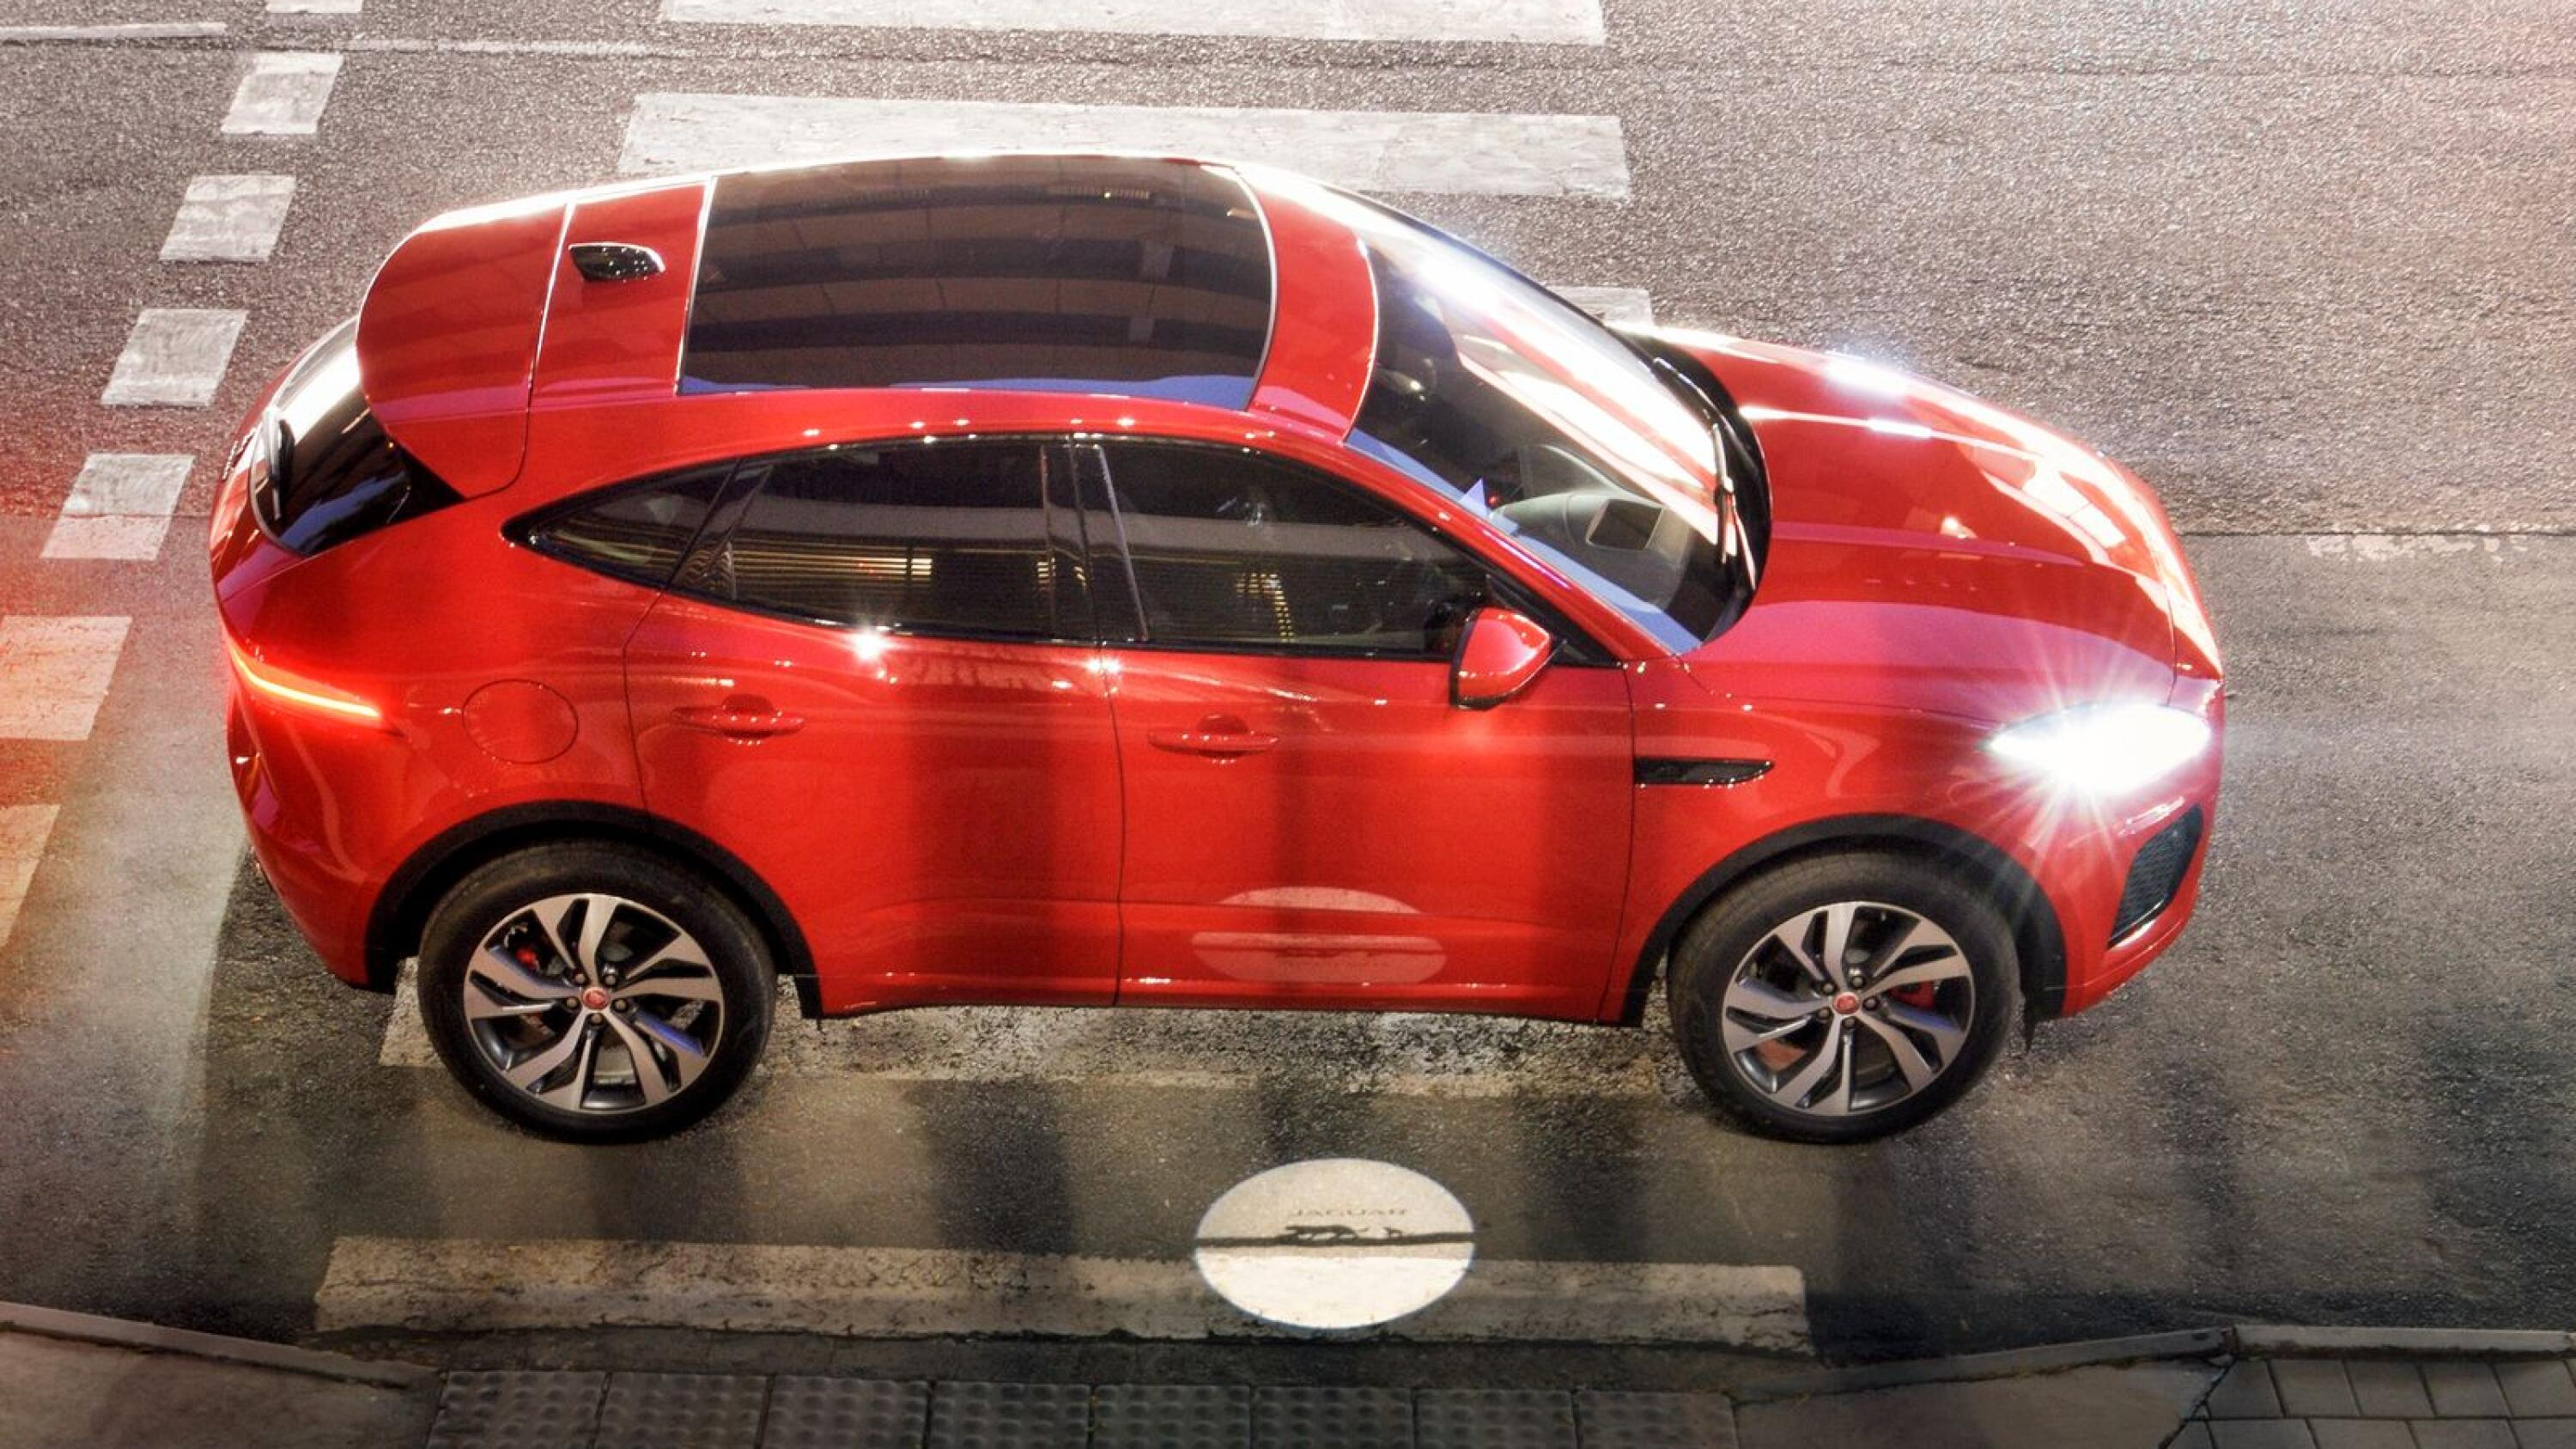 For 2021 Jaguar has given the E-Pace subtle styling changes to enhance its already sporty silhouette and stance